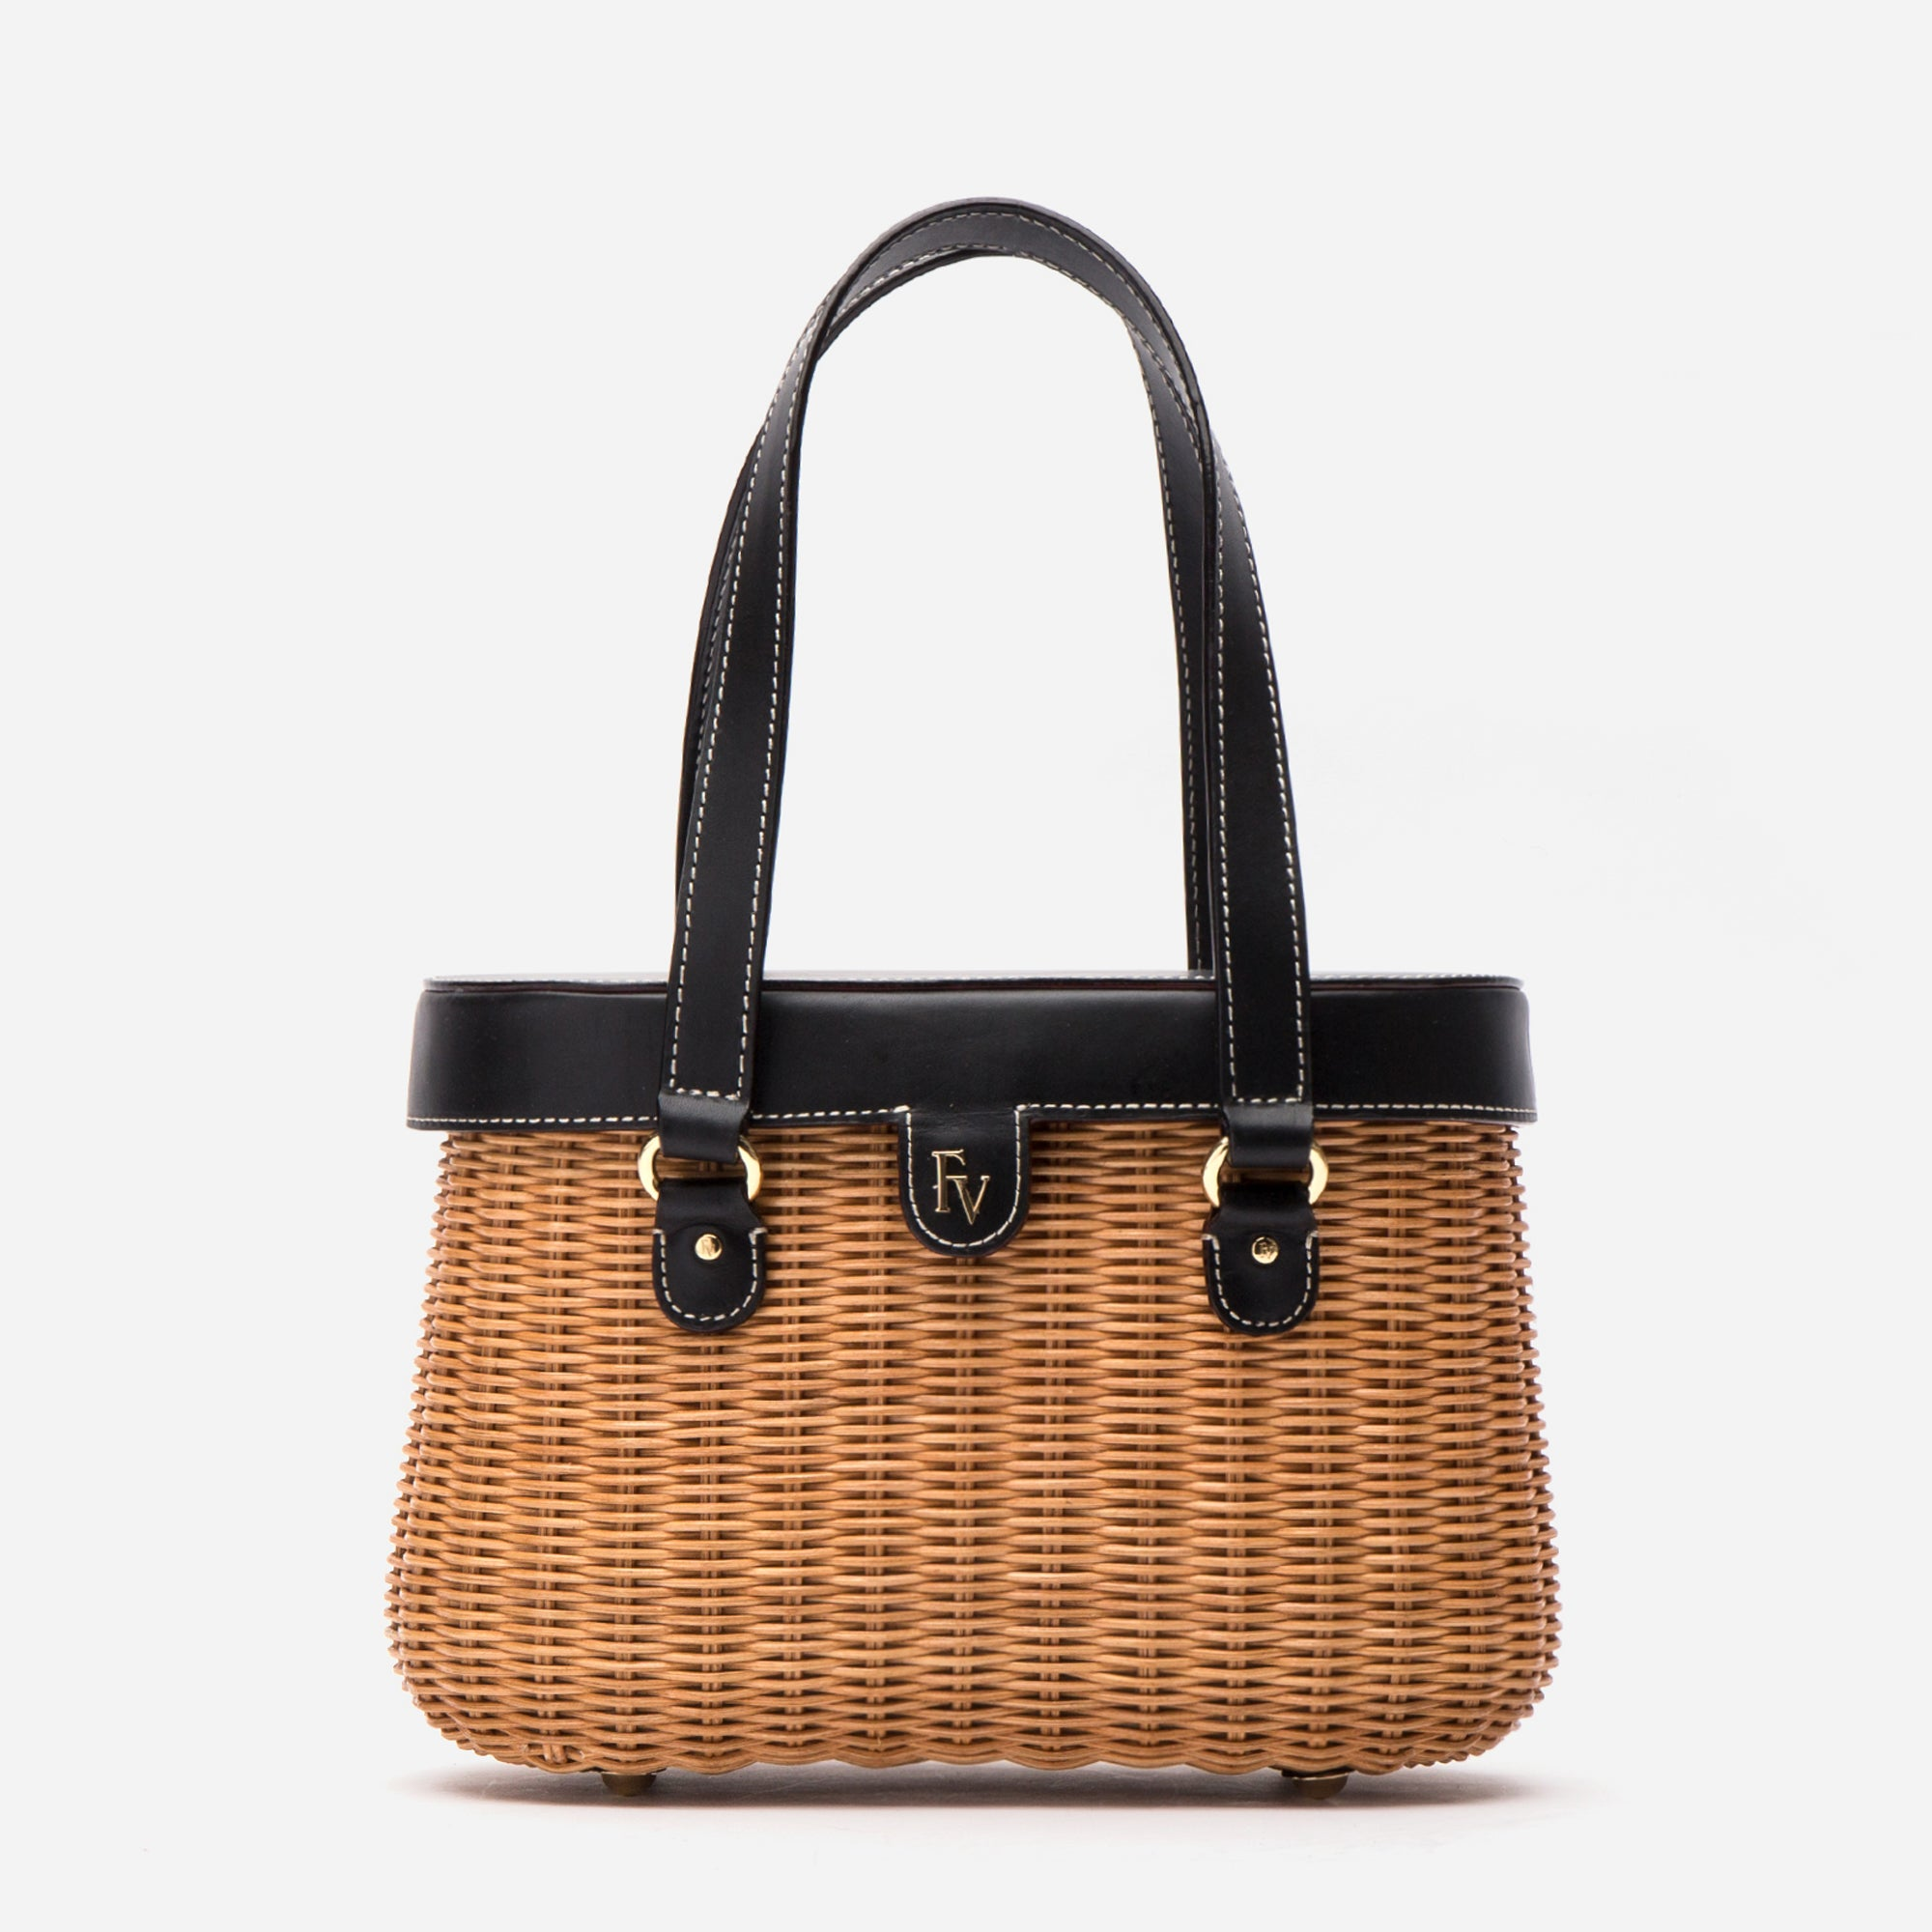 Arielle Wicker Basket Black - Frances Valentine